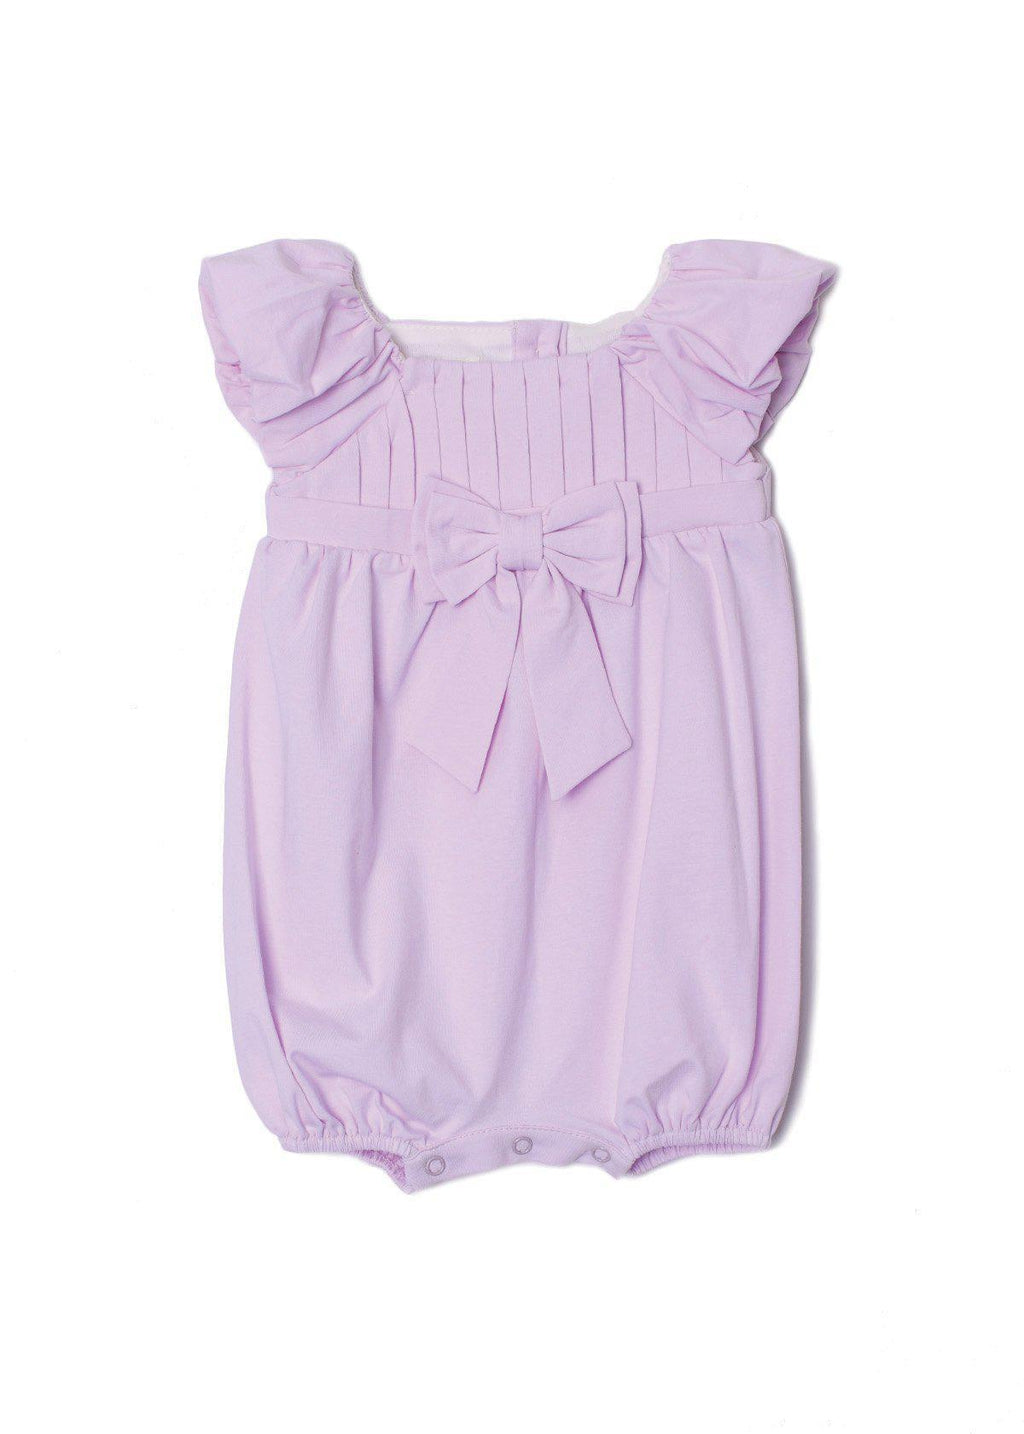 Belle Vie Romper - 3117LC Purple